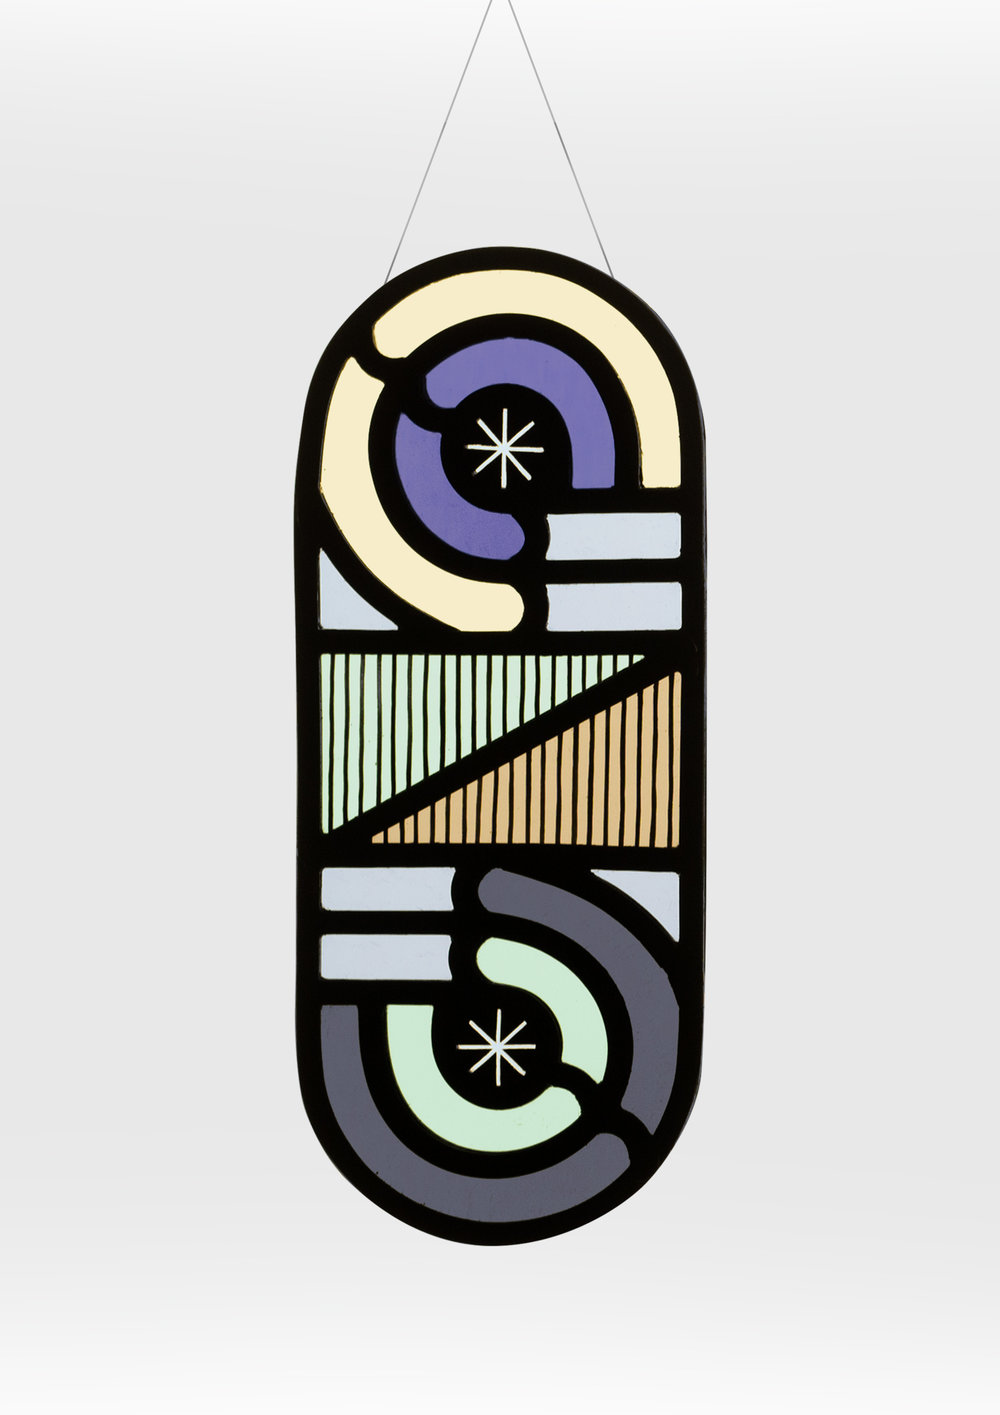 FeistForest // Flora Jamieson X Vicki Turner // Loop D Loop Stained Glass